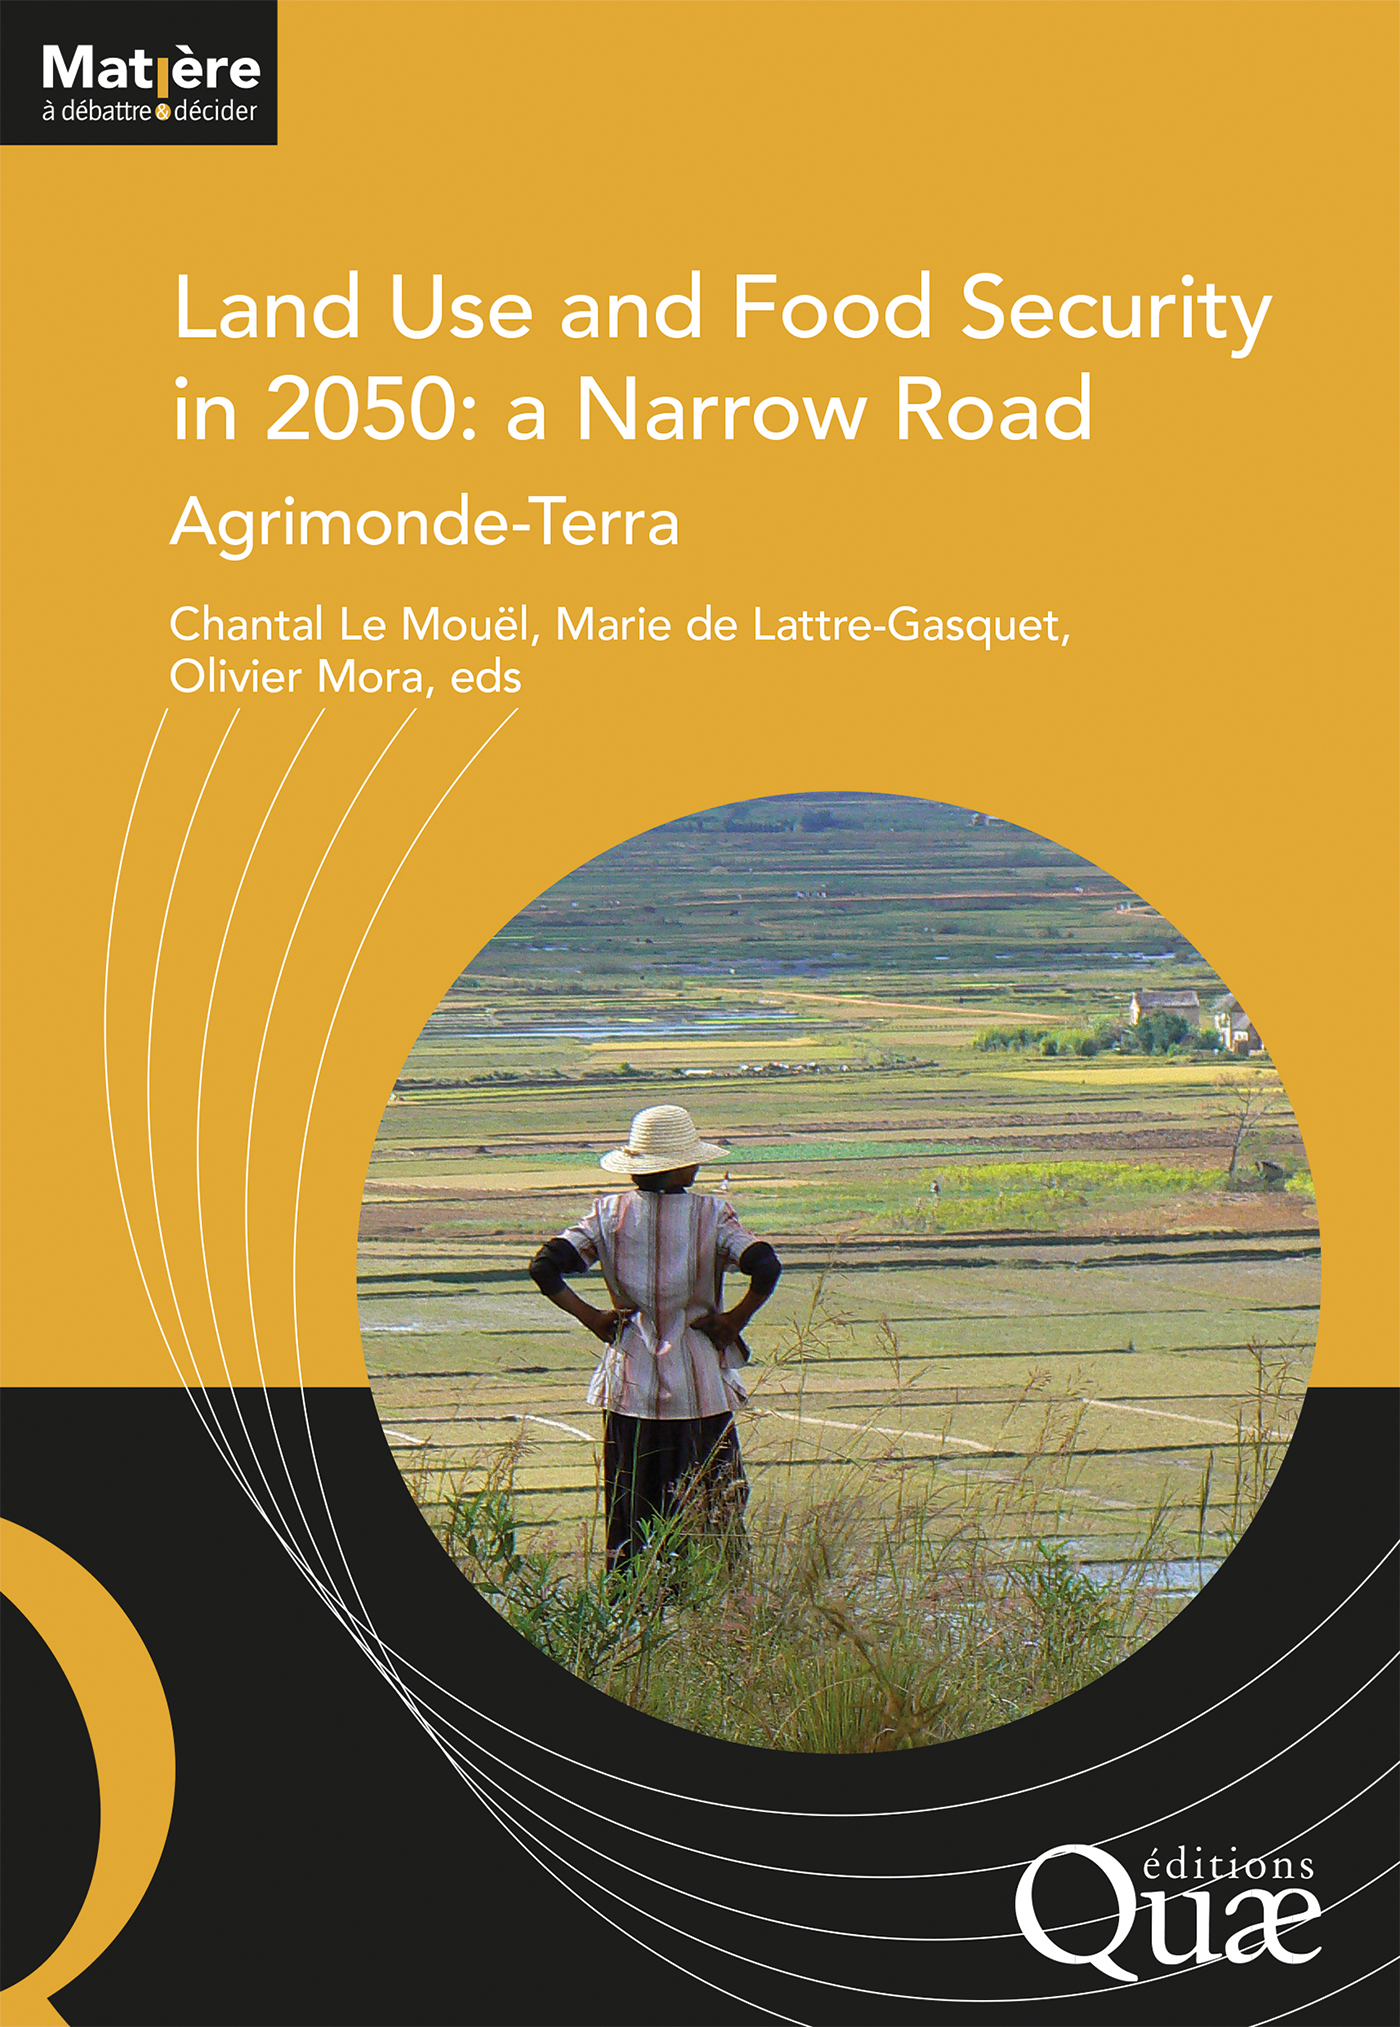 Land Use and Food Security in 2050: a Narrow Road De Olivier Mora, Marie de Lattre-Gasquet et Chantal Le Mouël - Quæ